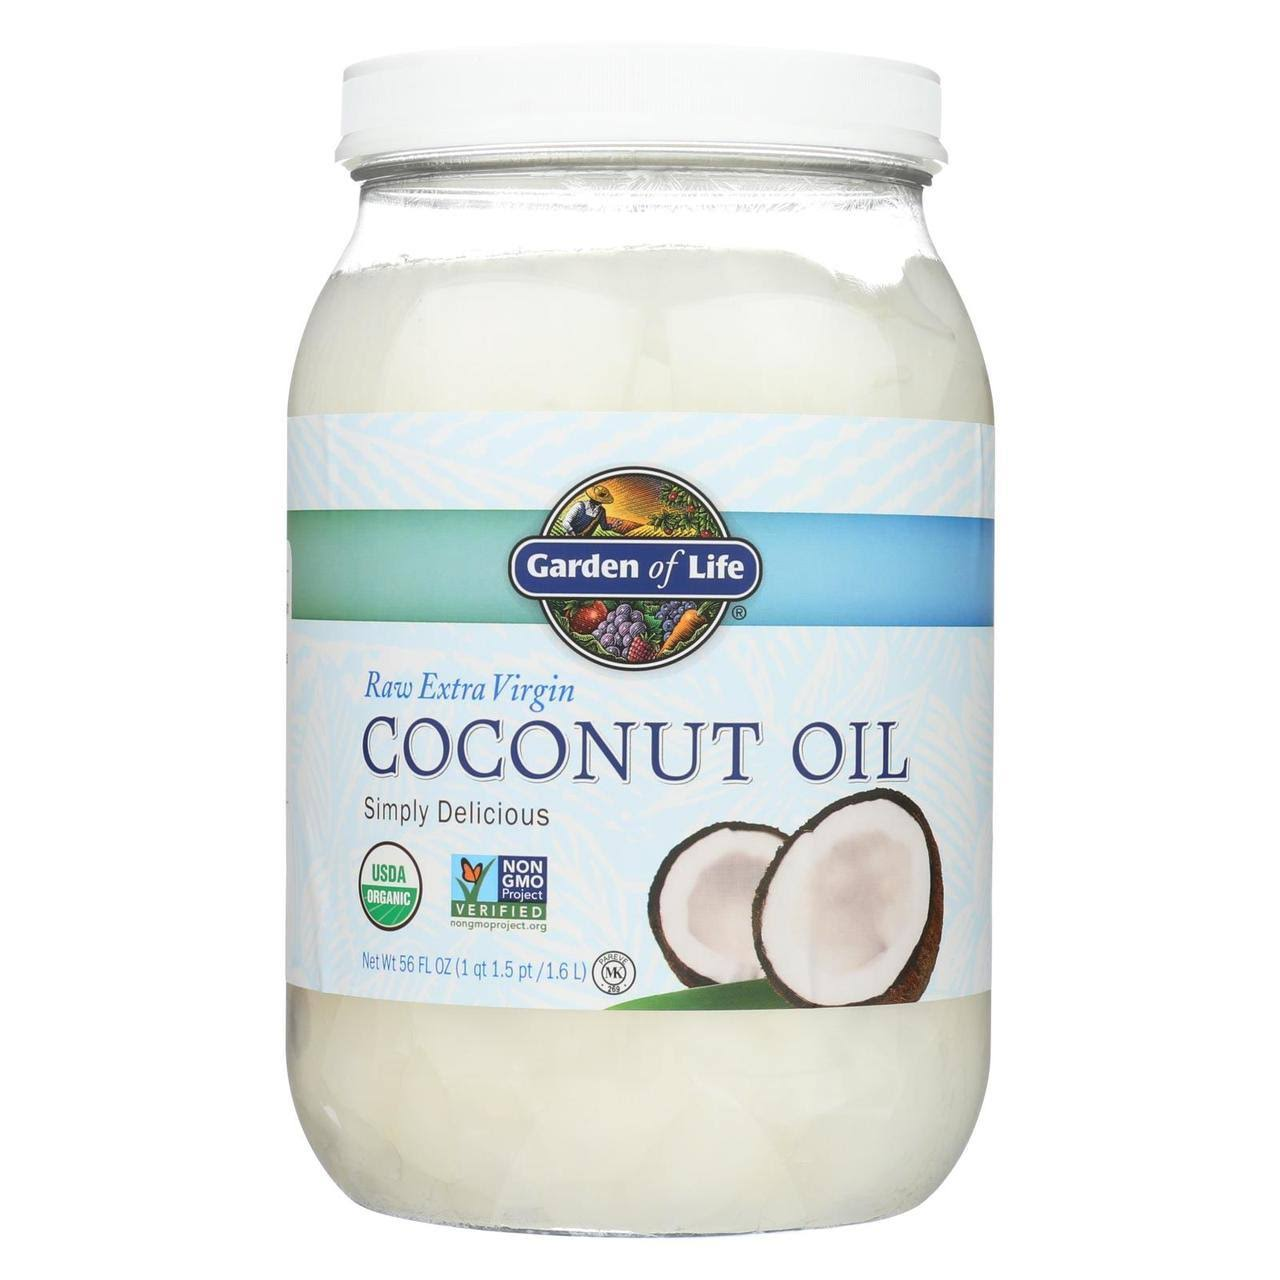 Garden of Life Organic Raw Extra Virgin Coconut Oil - 1.5l